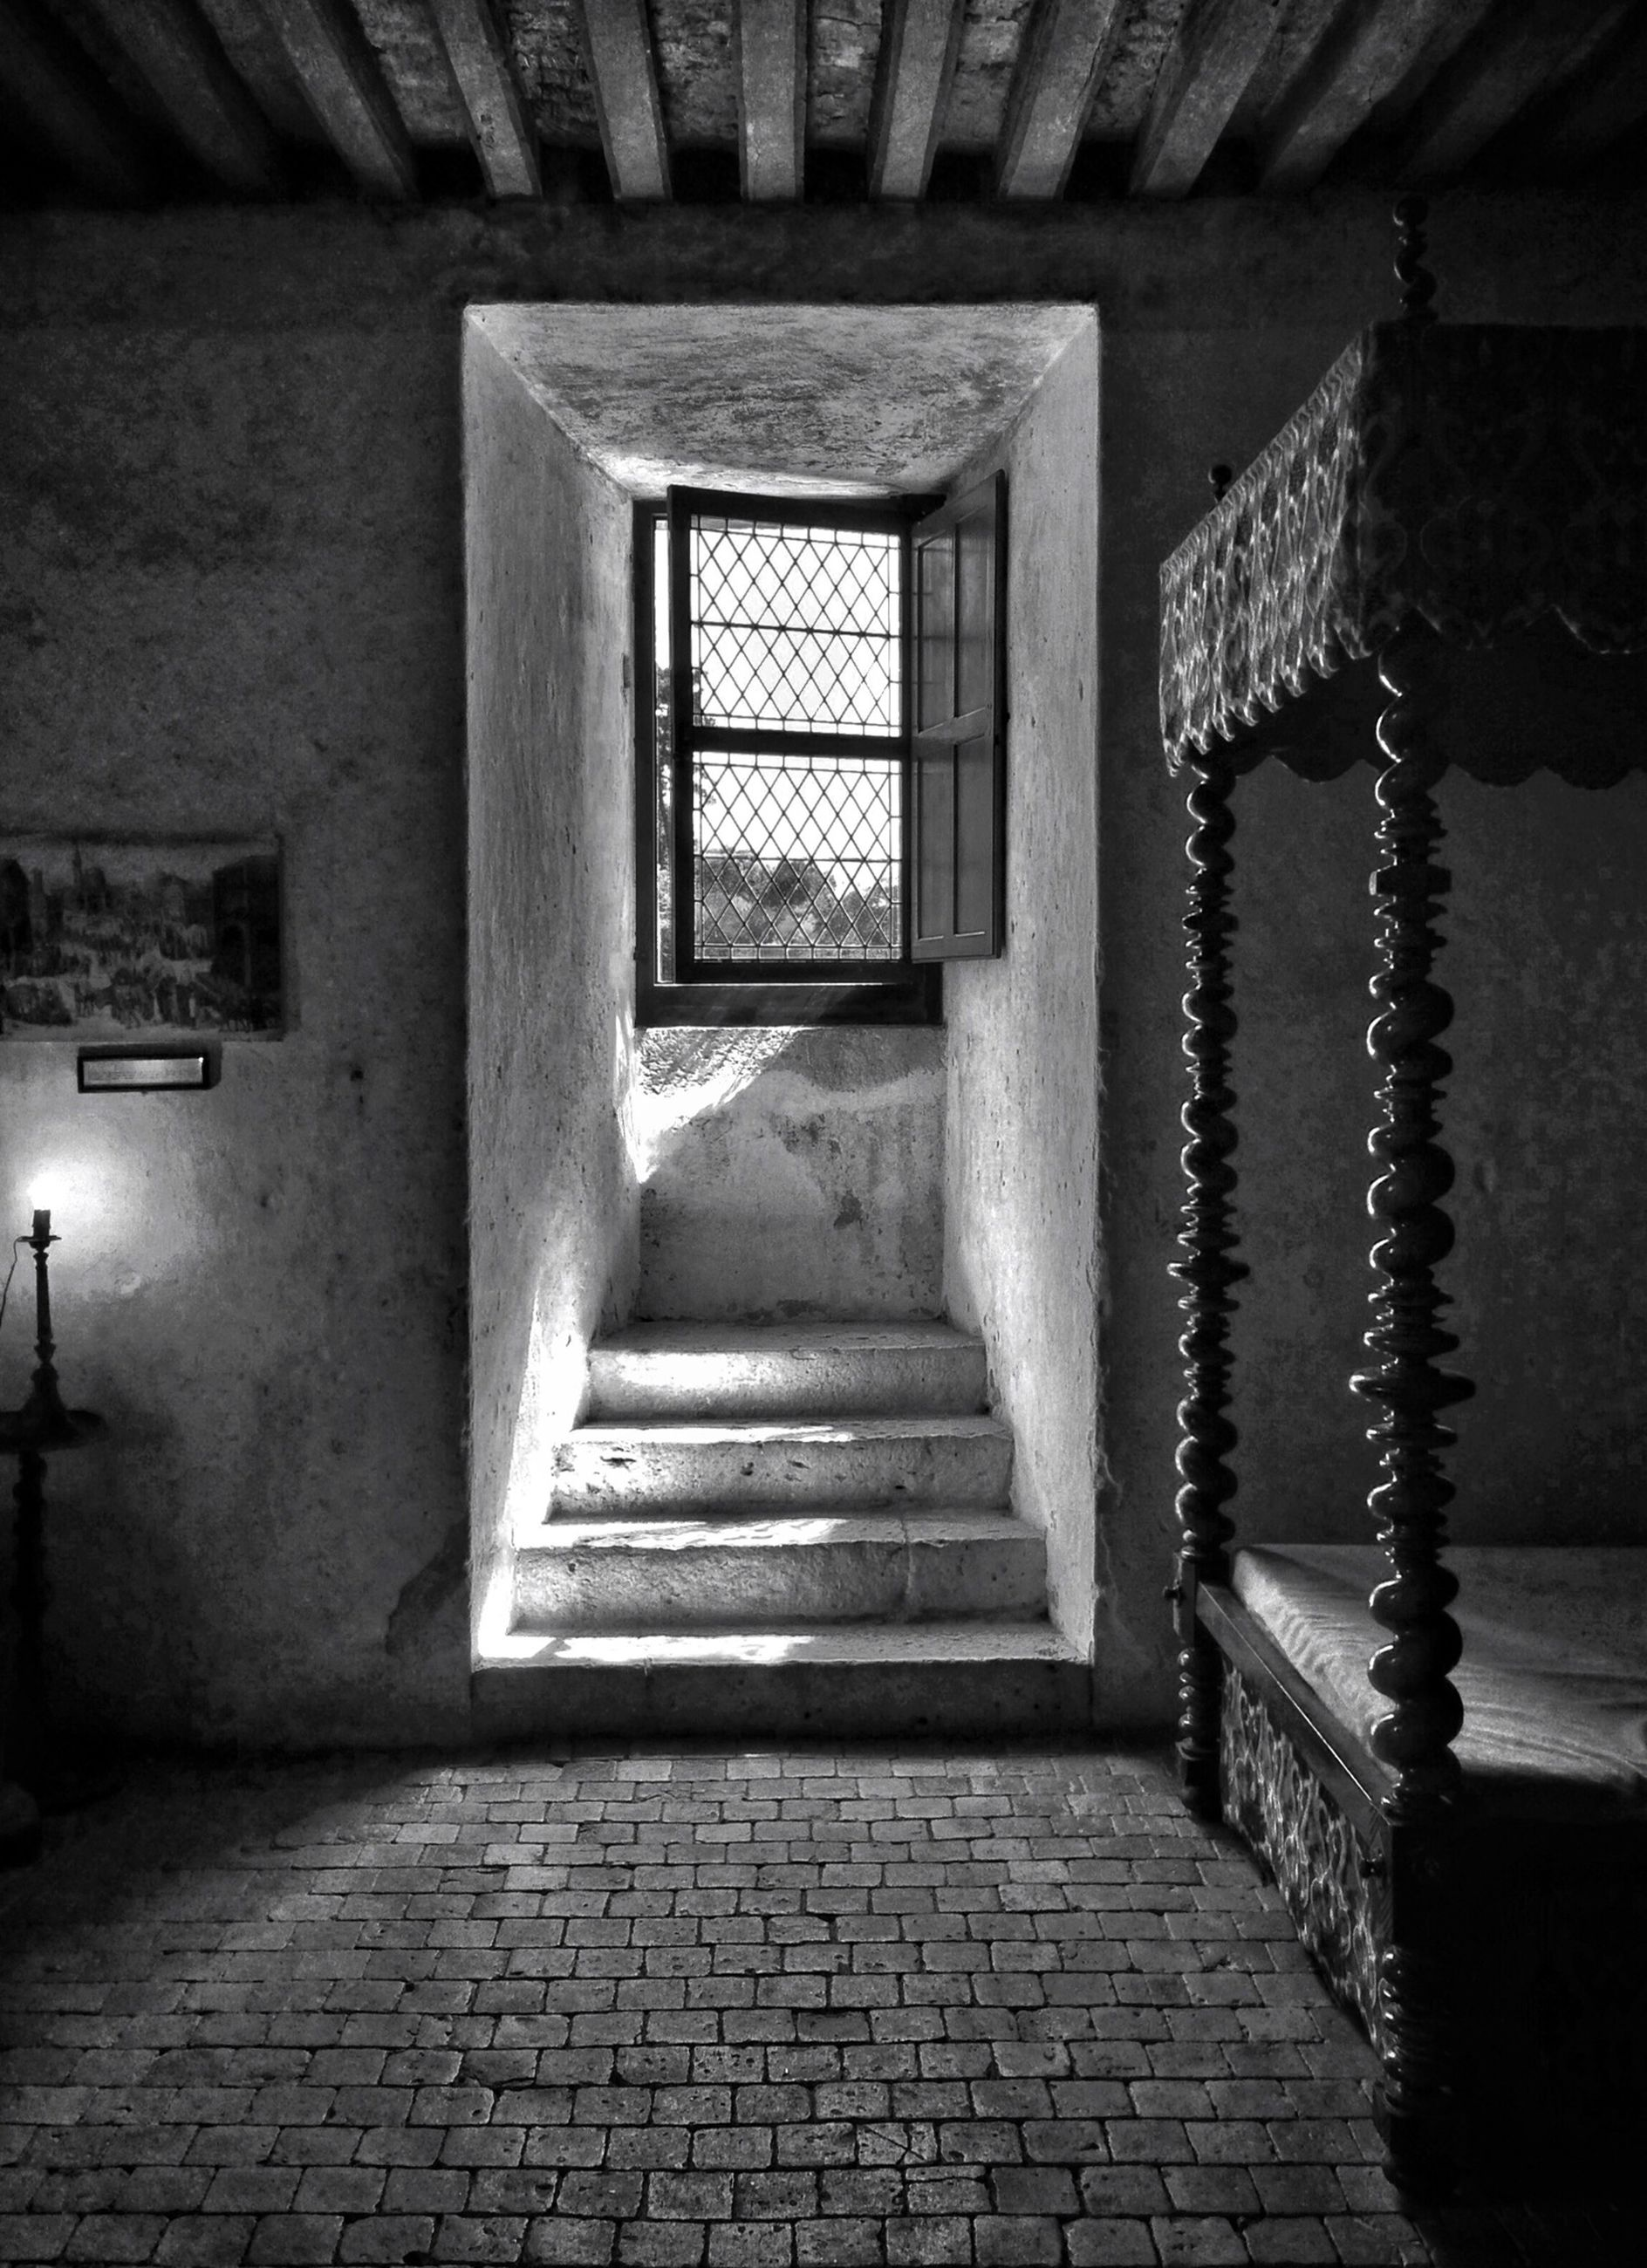 the way forward, architecture, built structure, empty, door, indoors, entrance, narrow, absence, corridor, wall - building feature, walkway, diminishing perspective, building exterior, steps, illuminated, no people, cobblestone, doorway, house